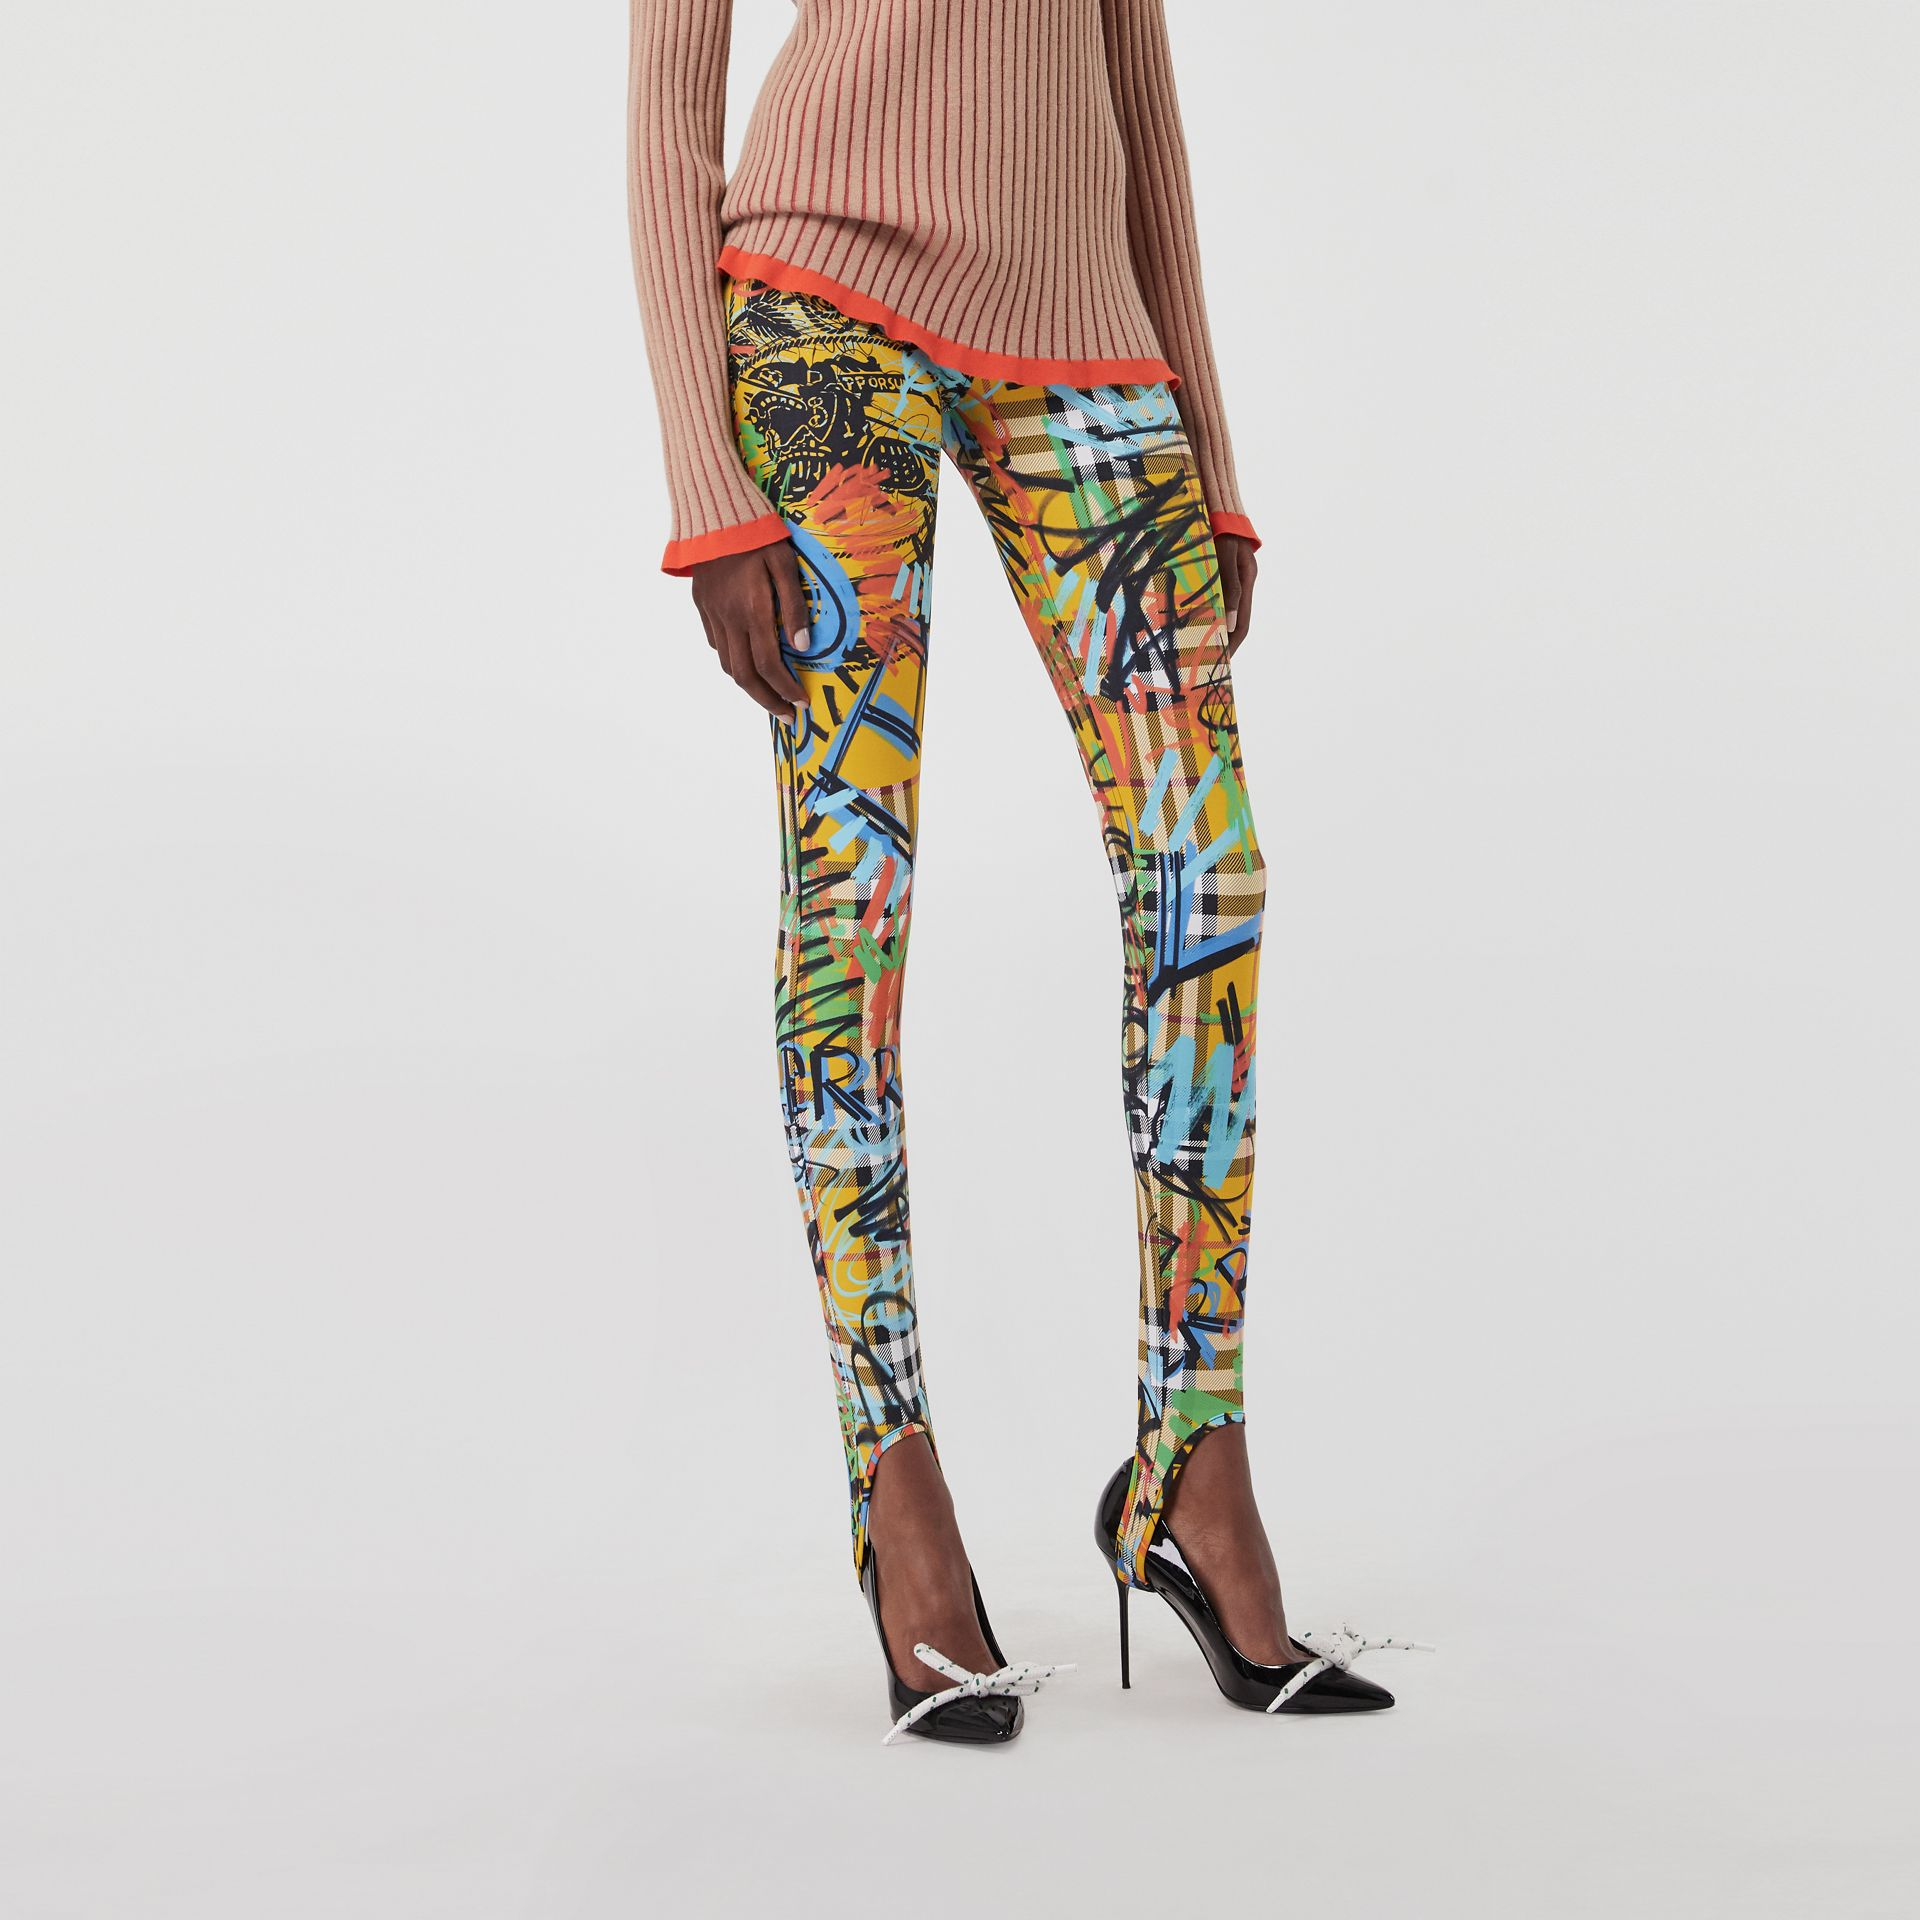 Graffiti Print Vintage Check Leggings in Amber Yellow - Women | Burberry Singapore - gallery image 4